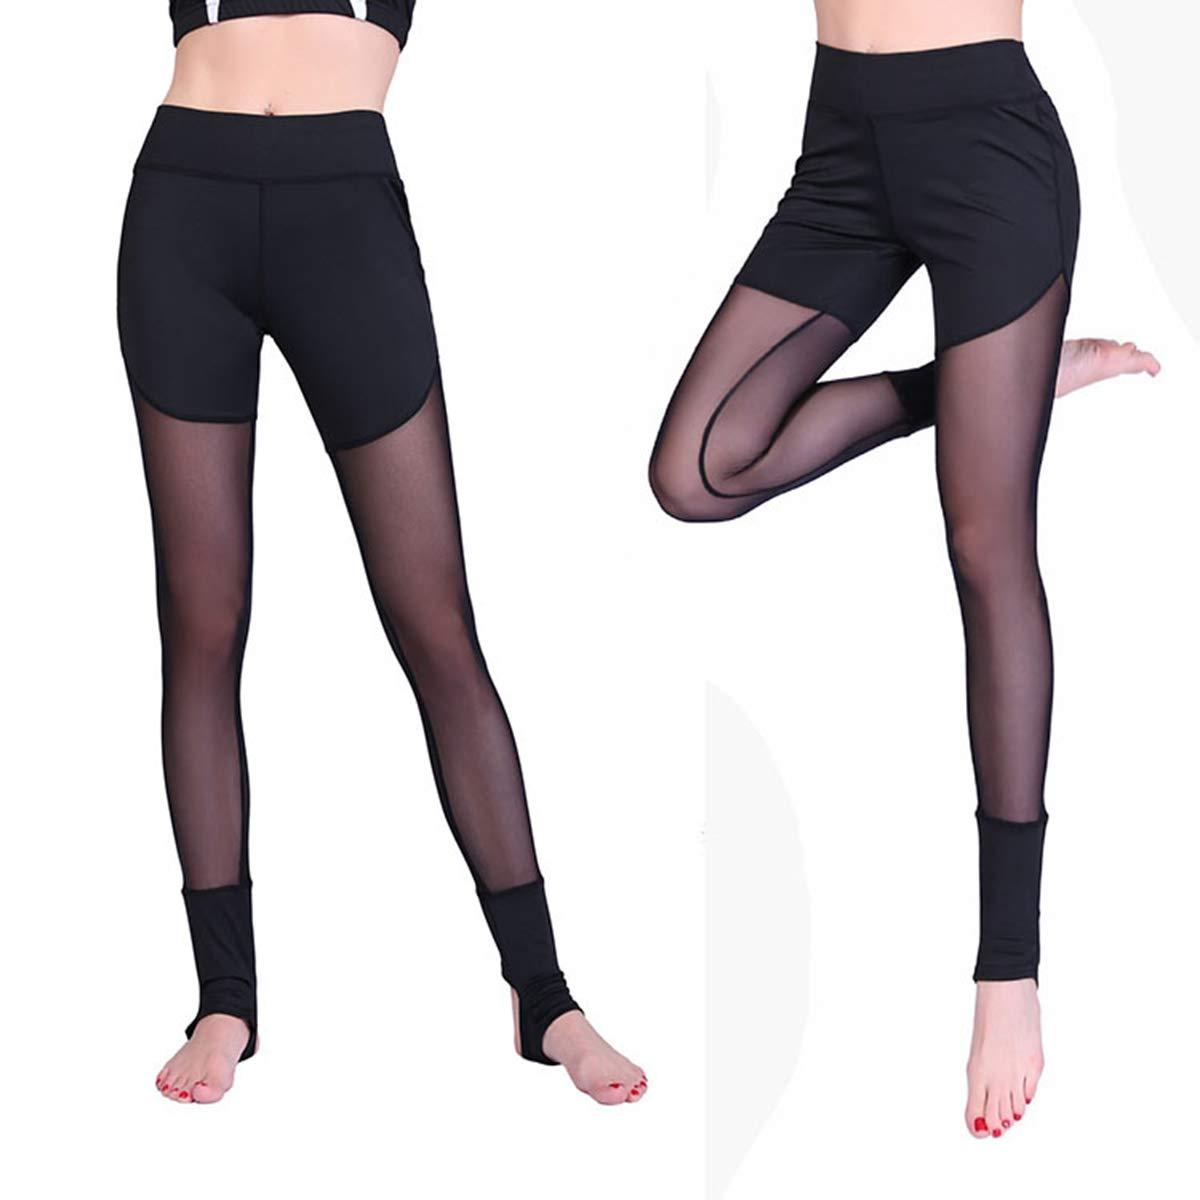 a2c9d3f3071ce Sexy Women's High Waist Skinny Patchwork Thigh Mesh Yoga Pants Tummy  Control Leggings Soft Fitness Capris